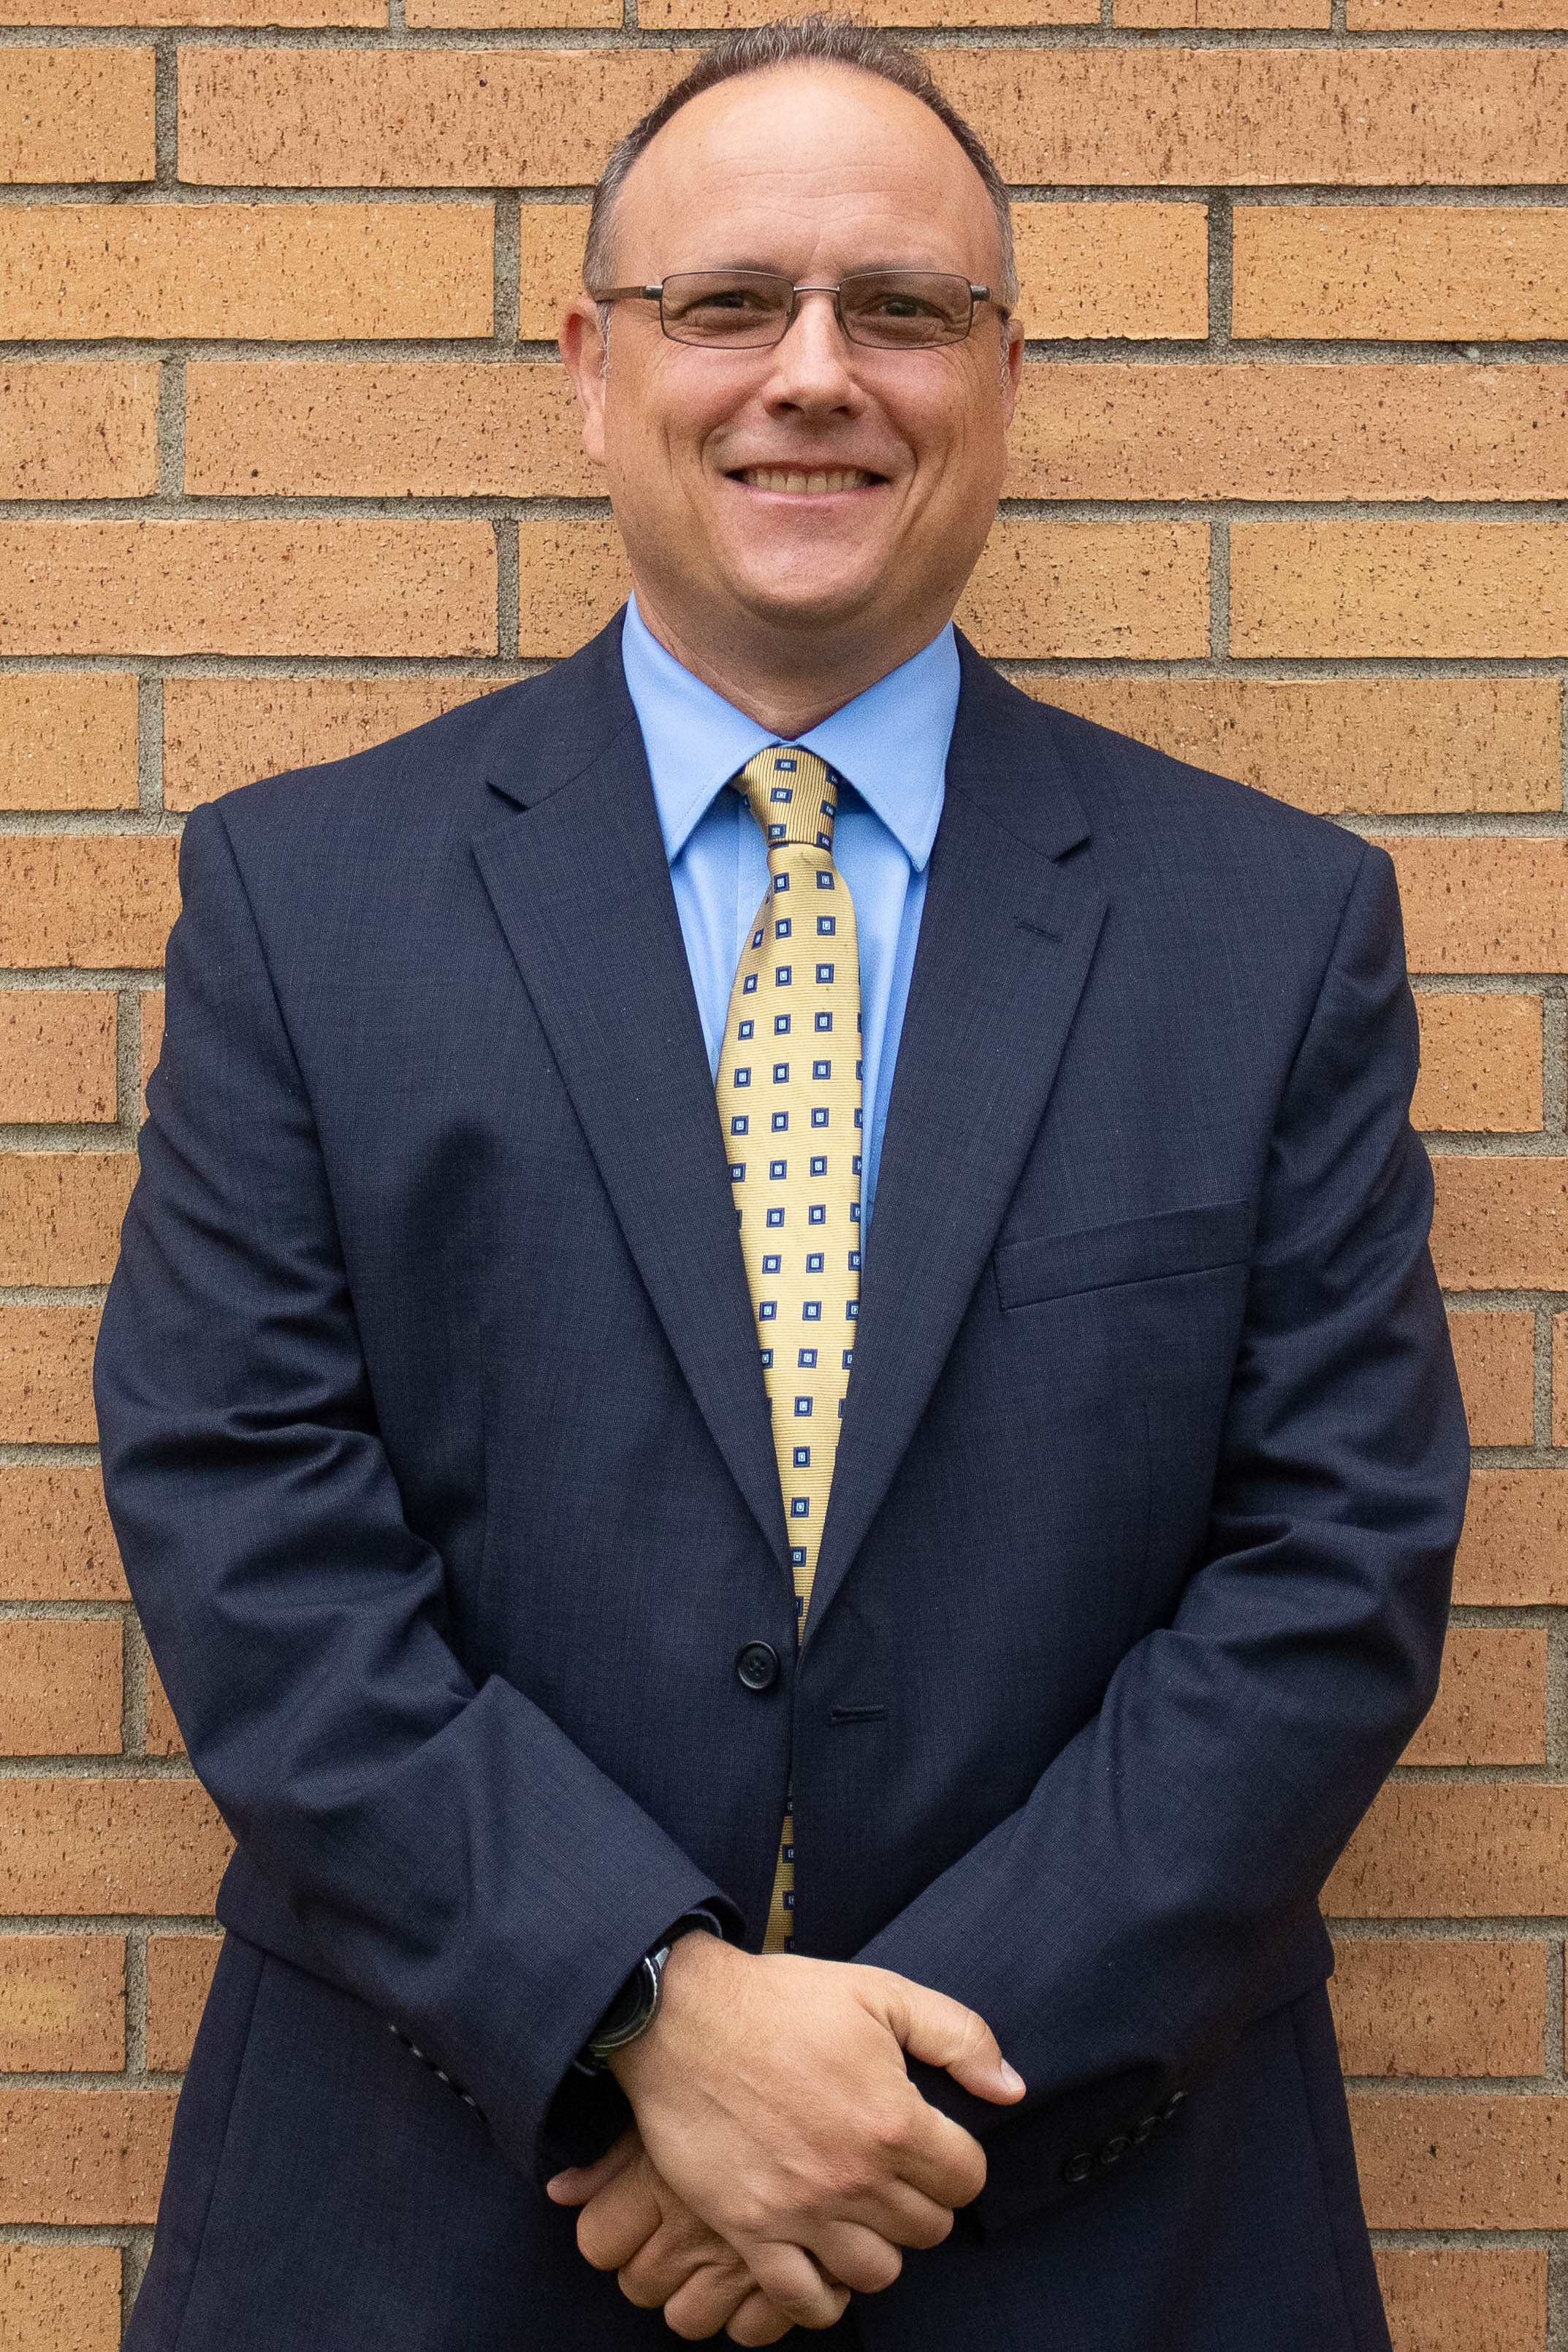 Anthony Luedy, Vice President - Email: LuedyA@fnblifetime.comVisit: First National Bank